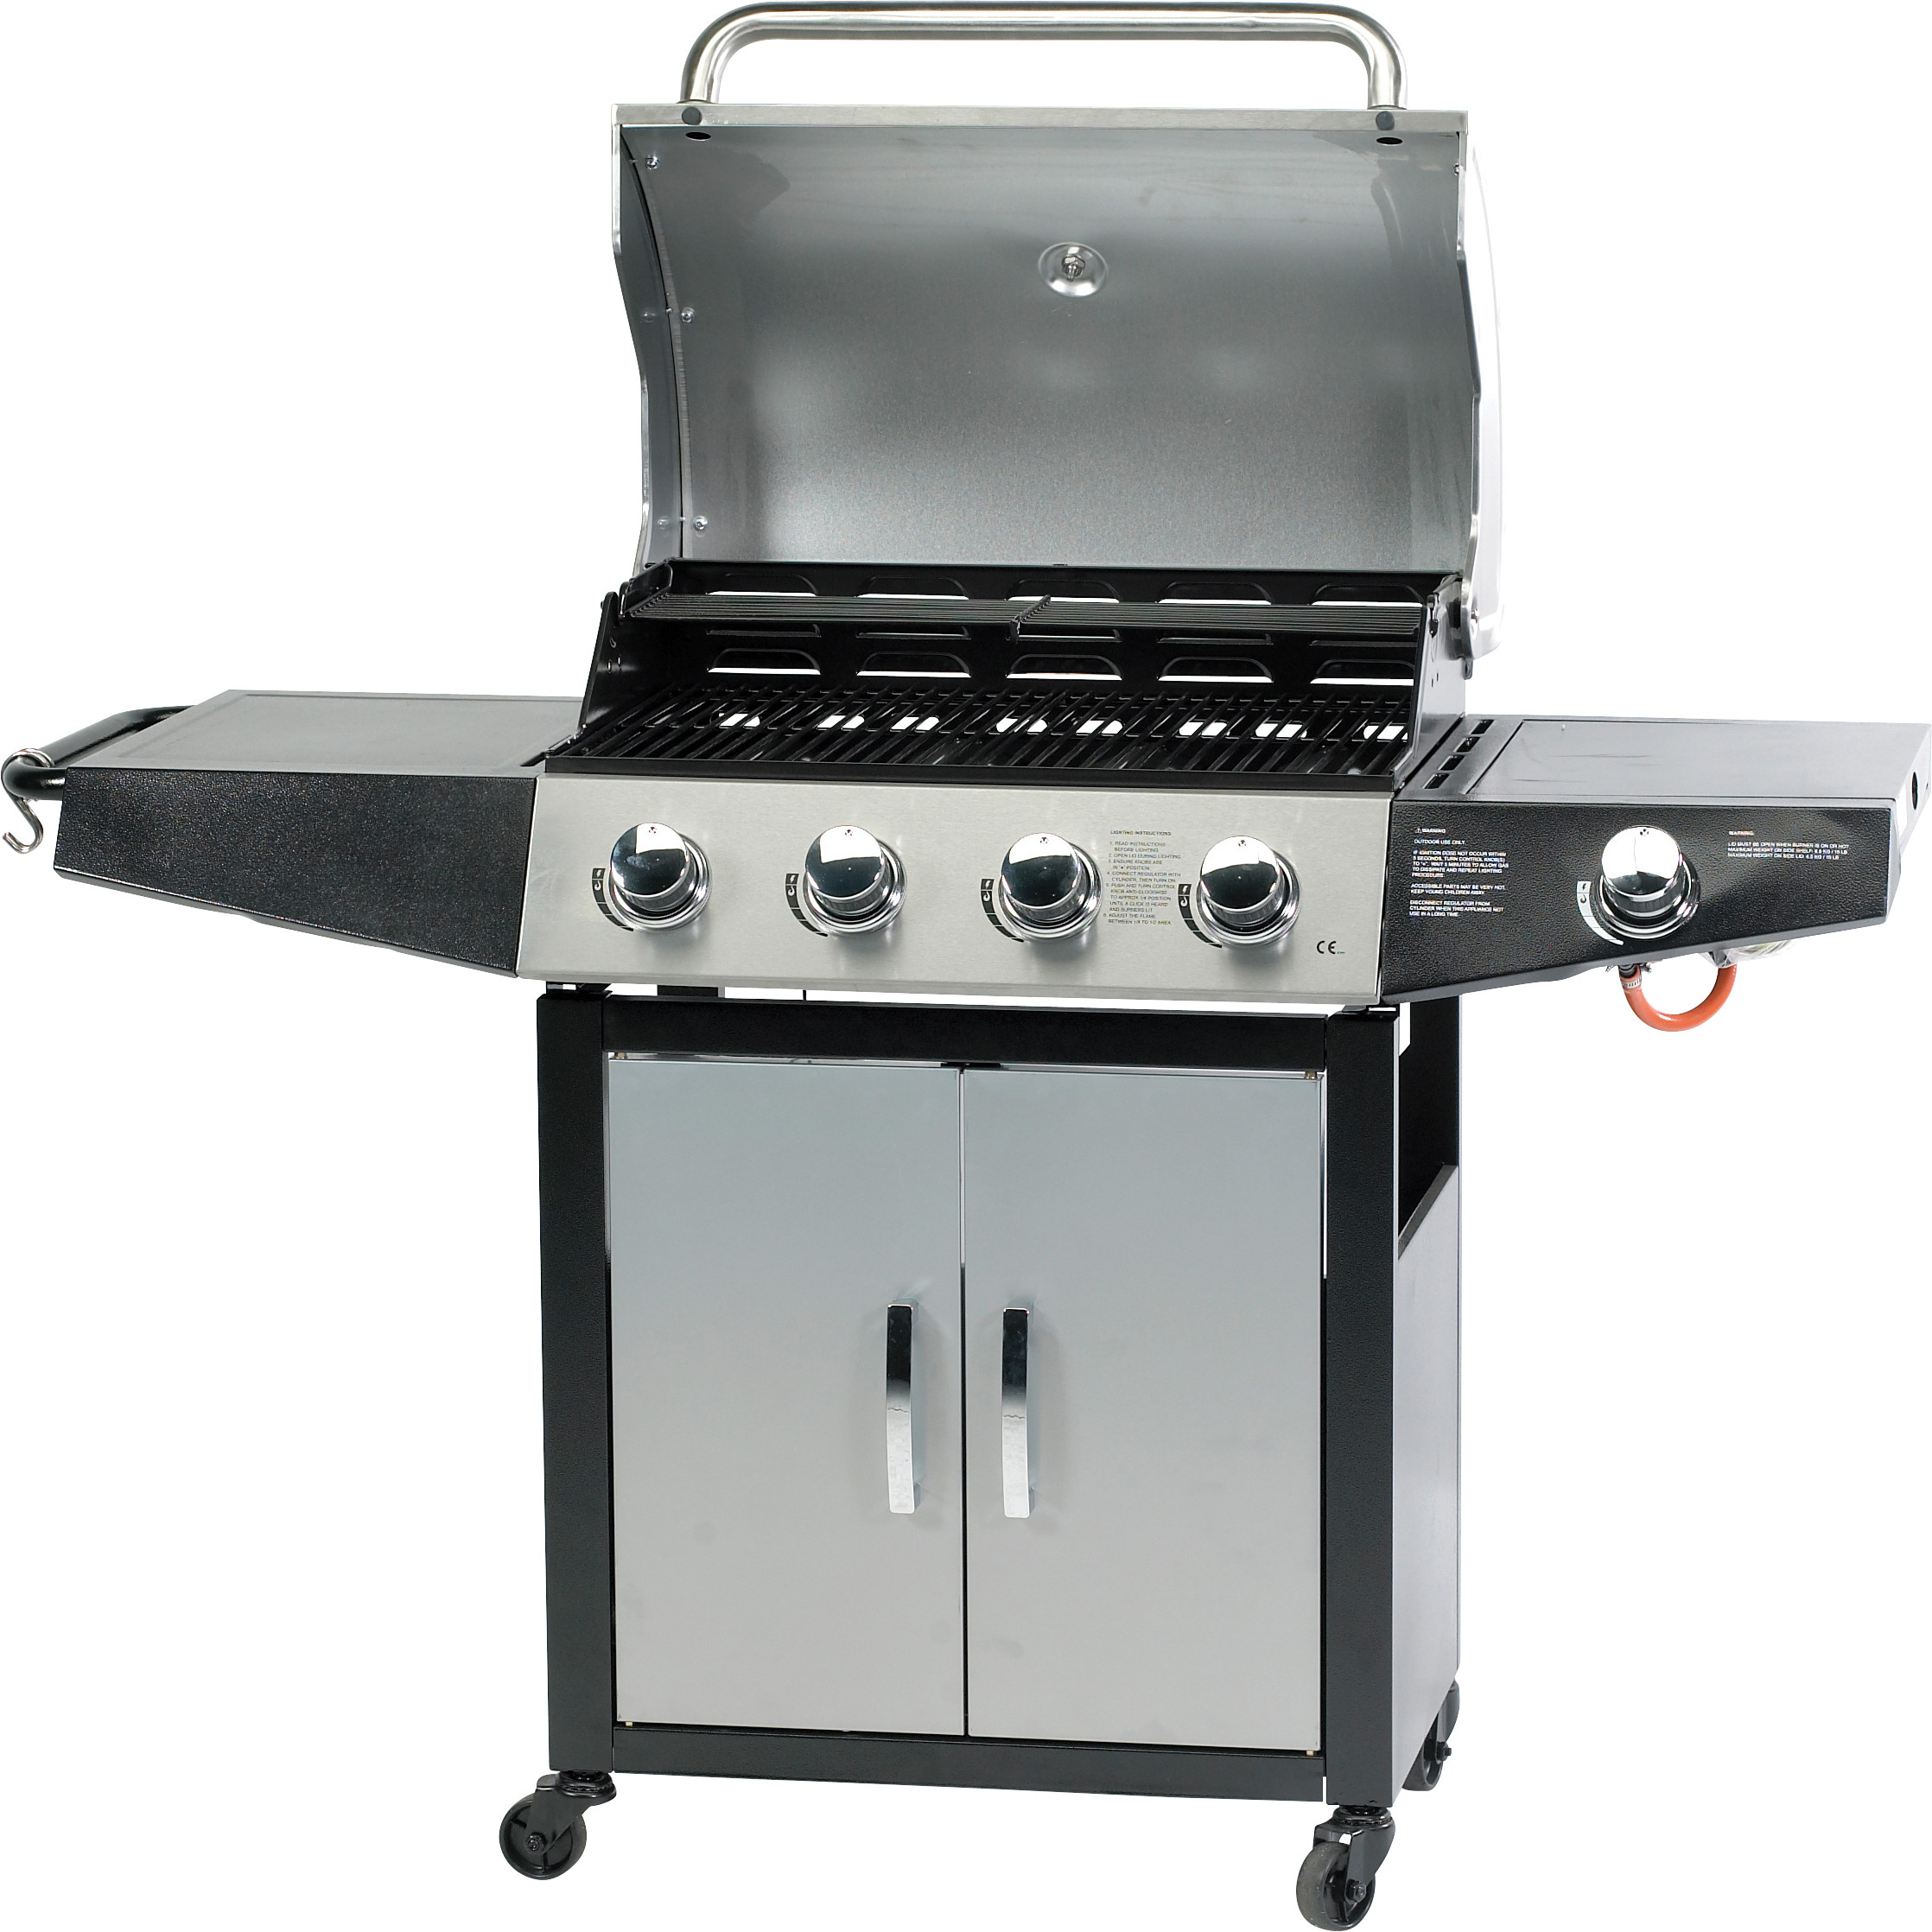 https://www.firstfurniture.co.uk/pub/media/catalog/product/R/o/Royal-Craft-Classic-4-Gas-Barbecue-with-Side-Burner-and-Cabinet.jpg